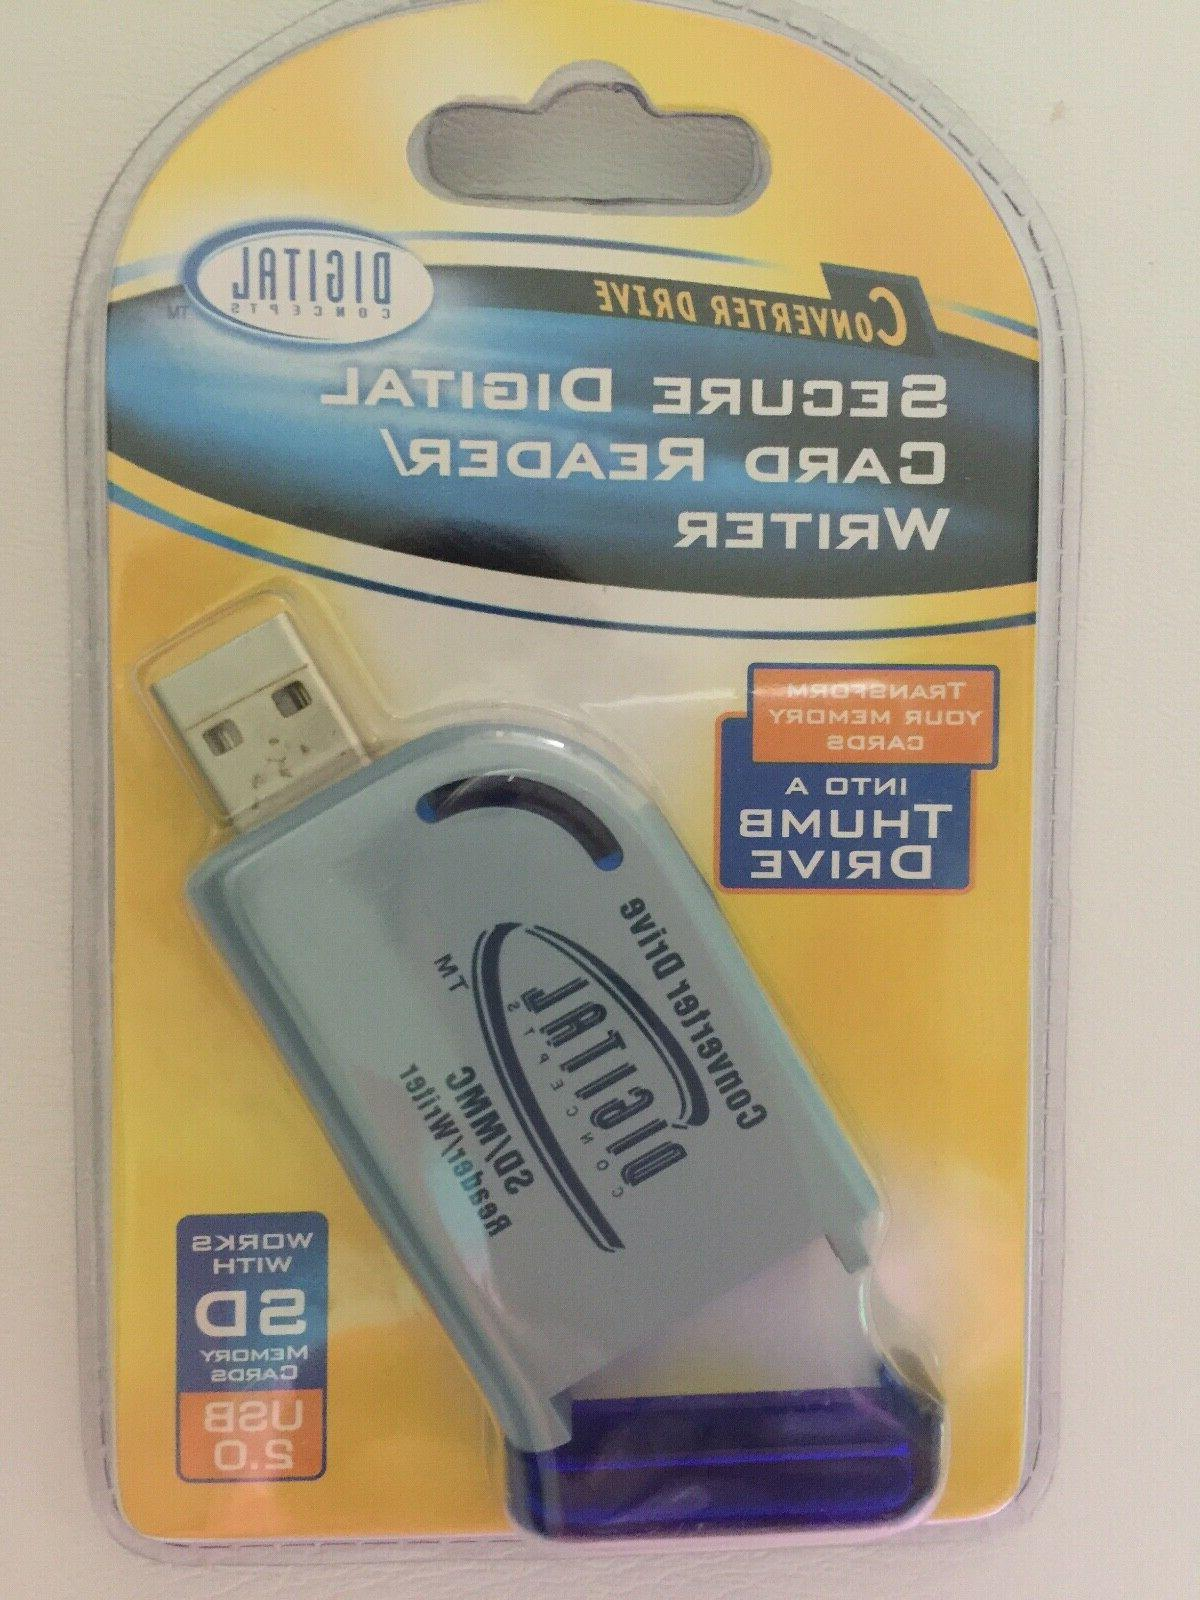 brand new in package secure card reader